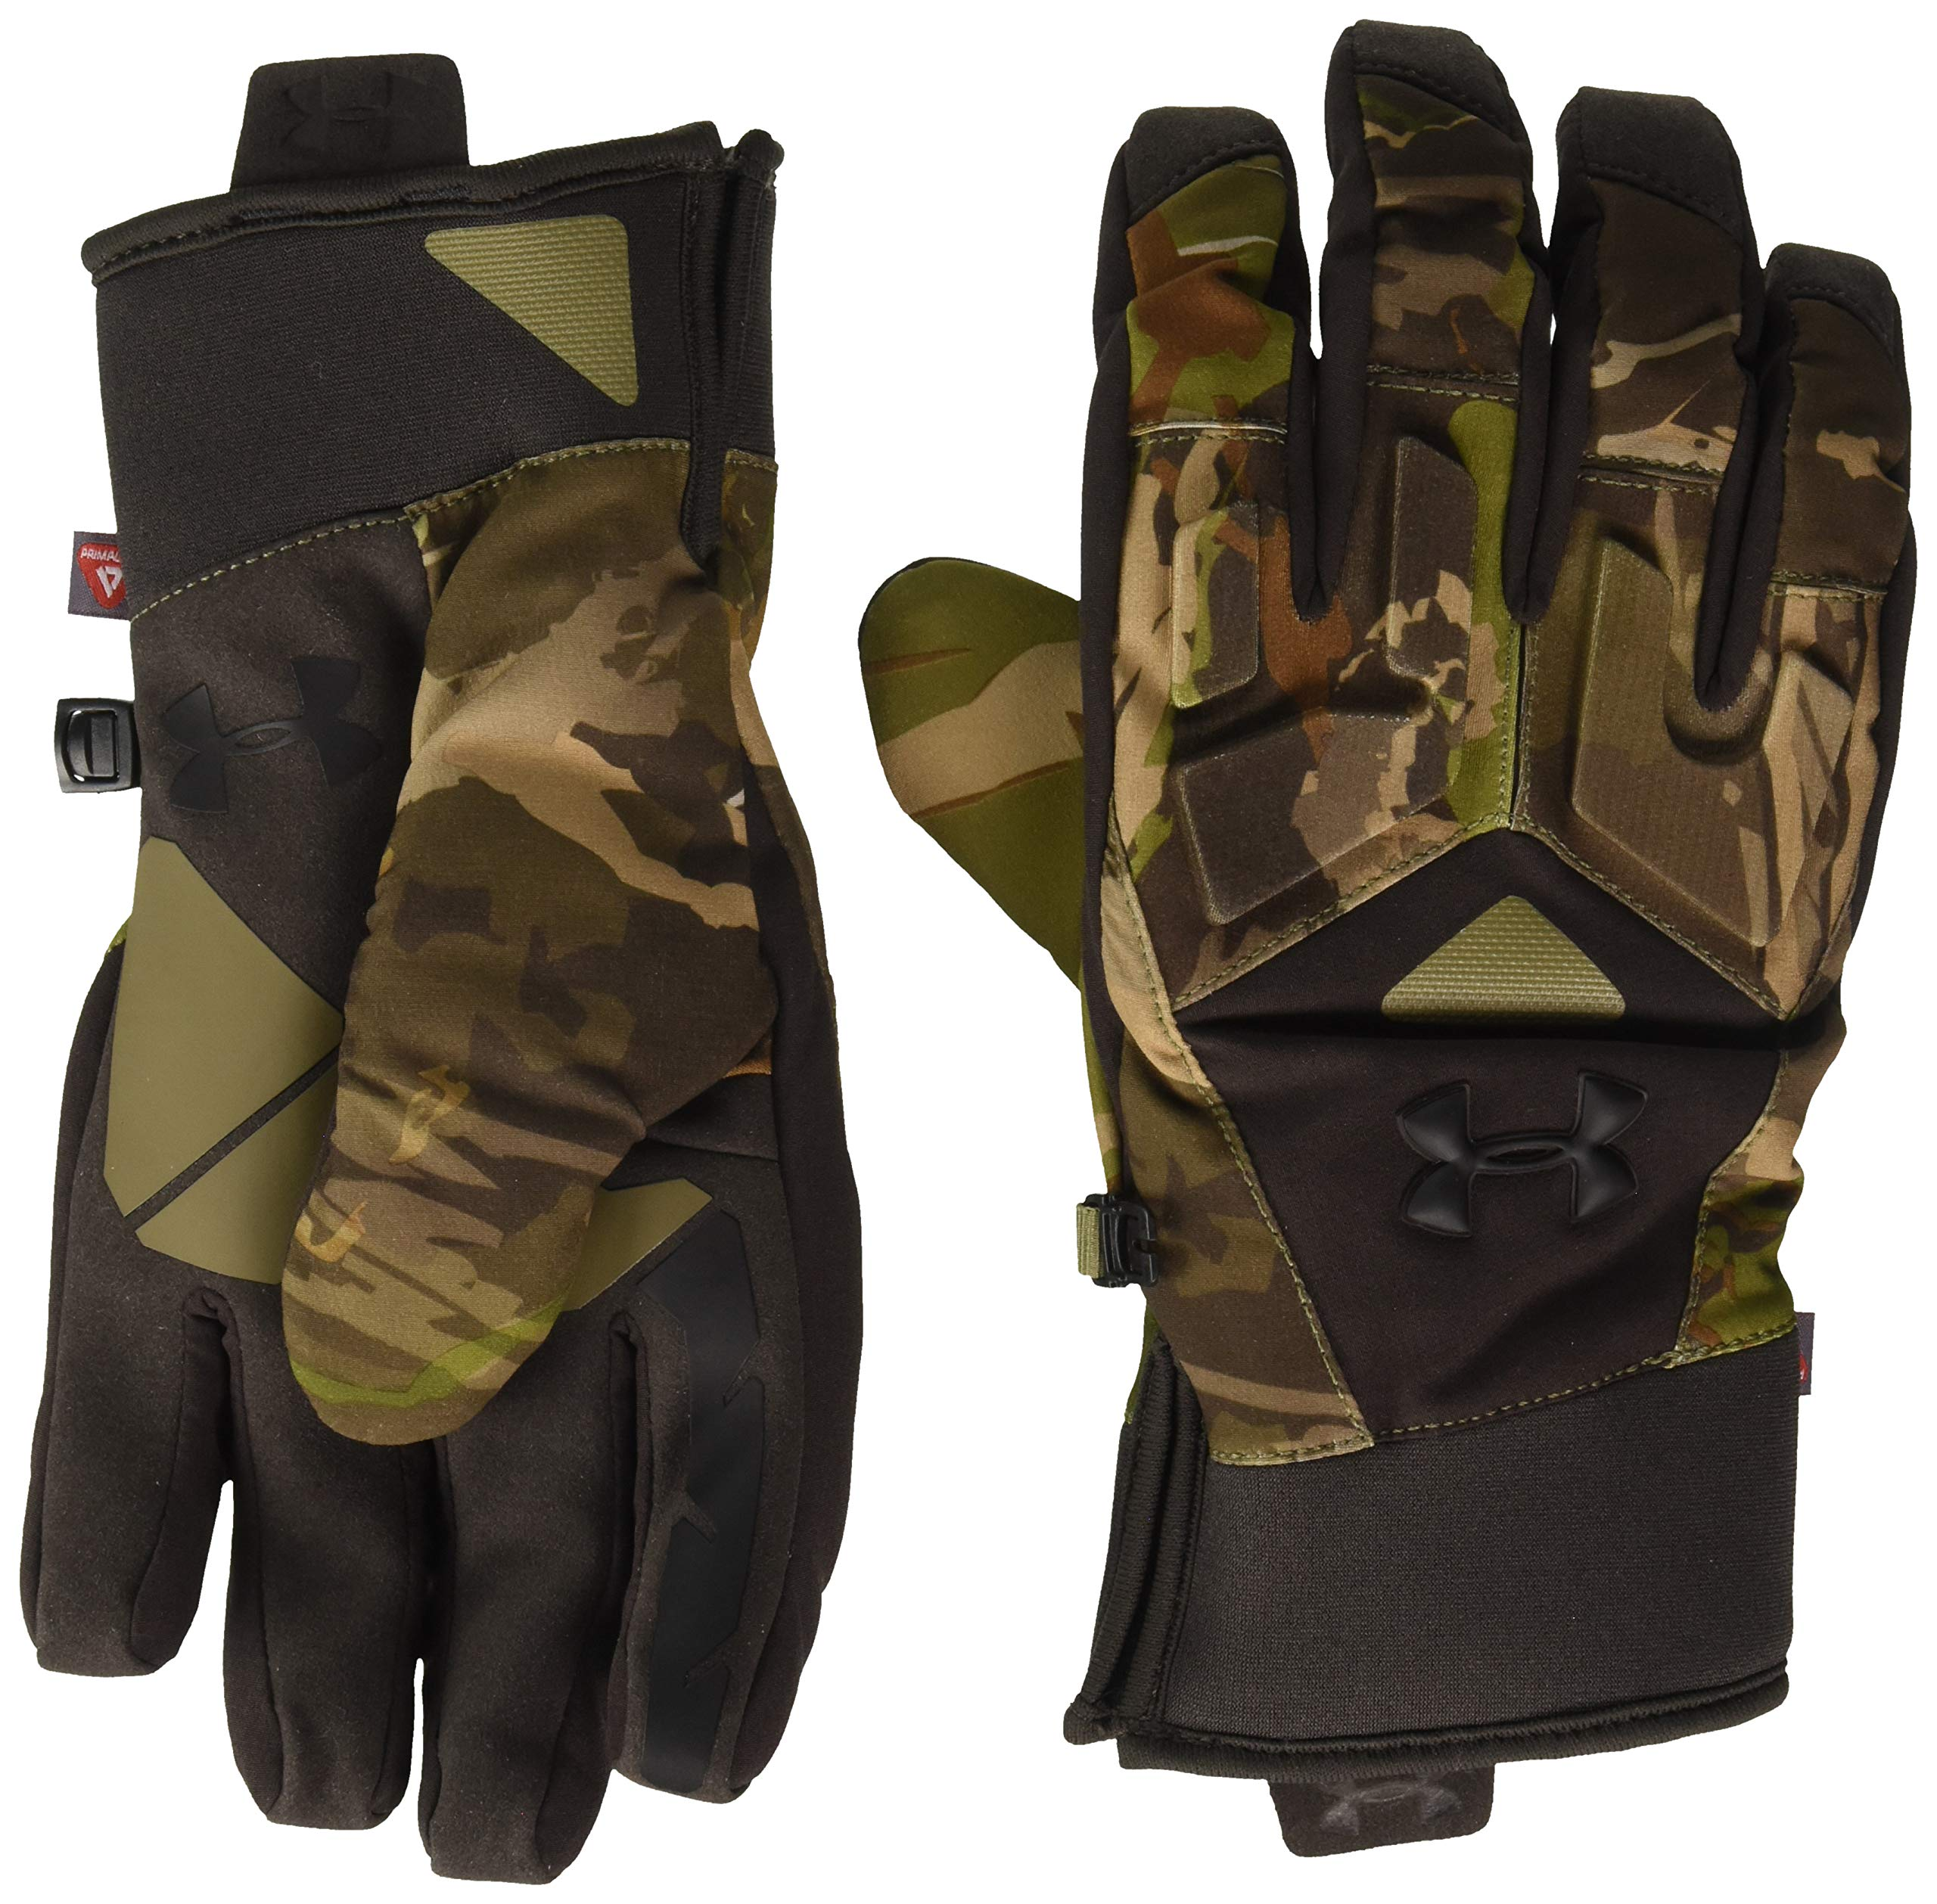 Under Armour Men's Scent Control Primer 2.0 Gloves, Ridge Reaper Camo Fo (943)/Black, Medium by Under Armour